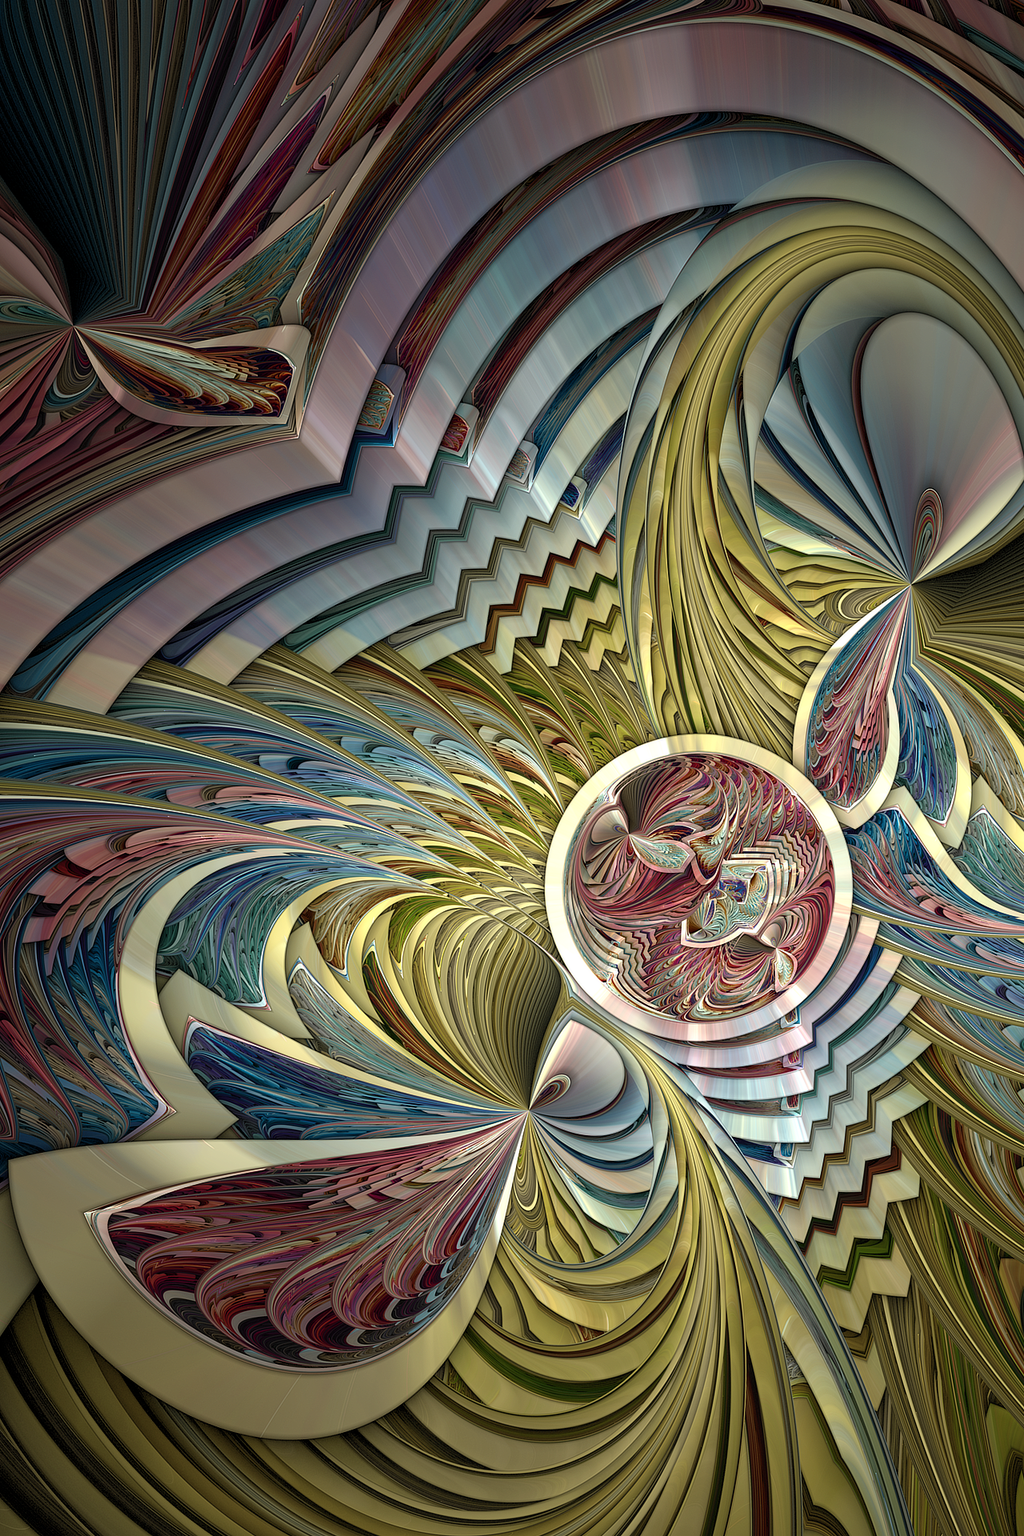 Snipzag Plangkye Fractal Art Psychedelic Abstract